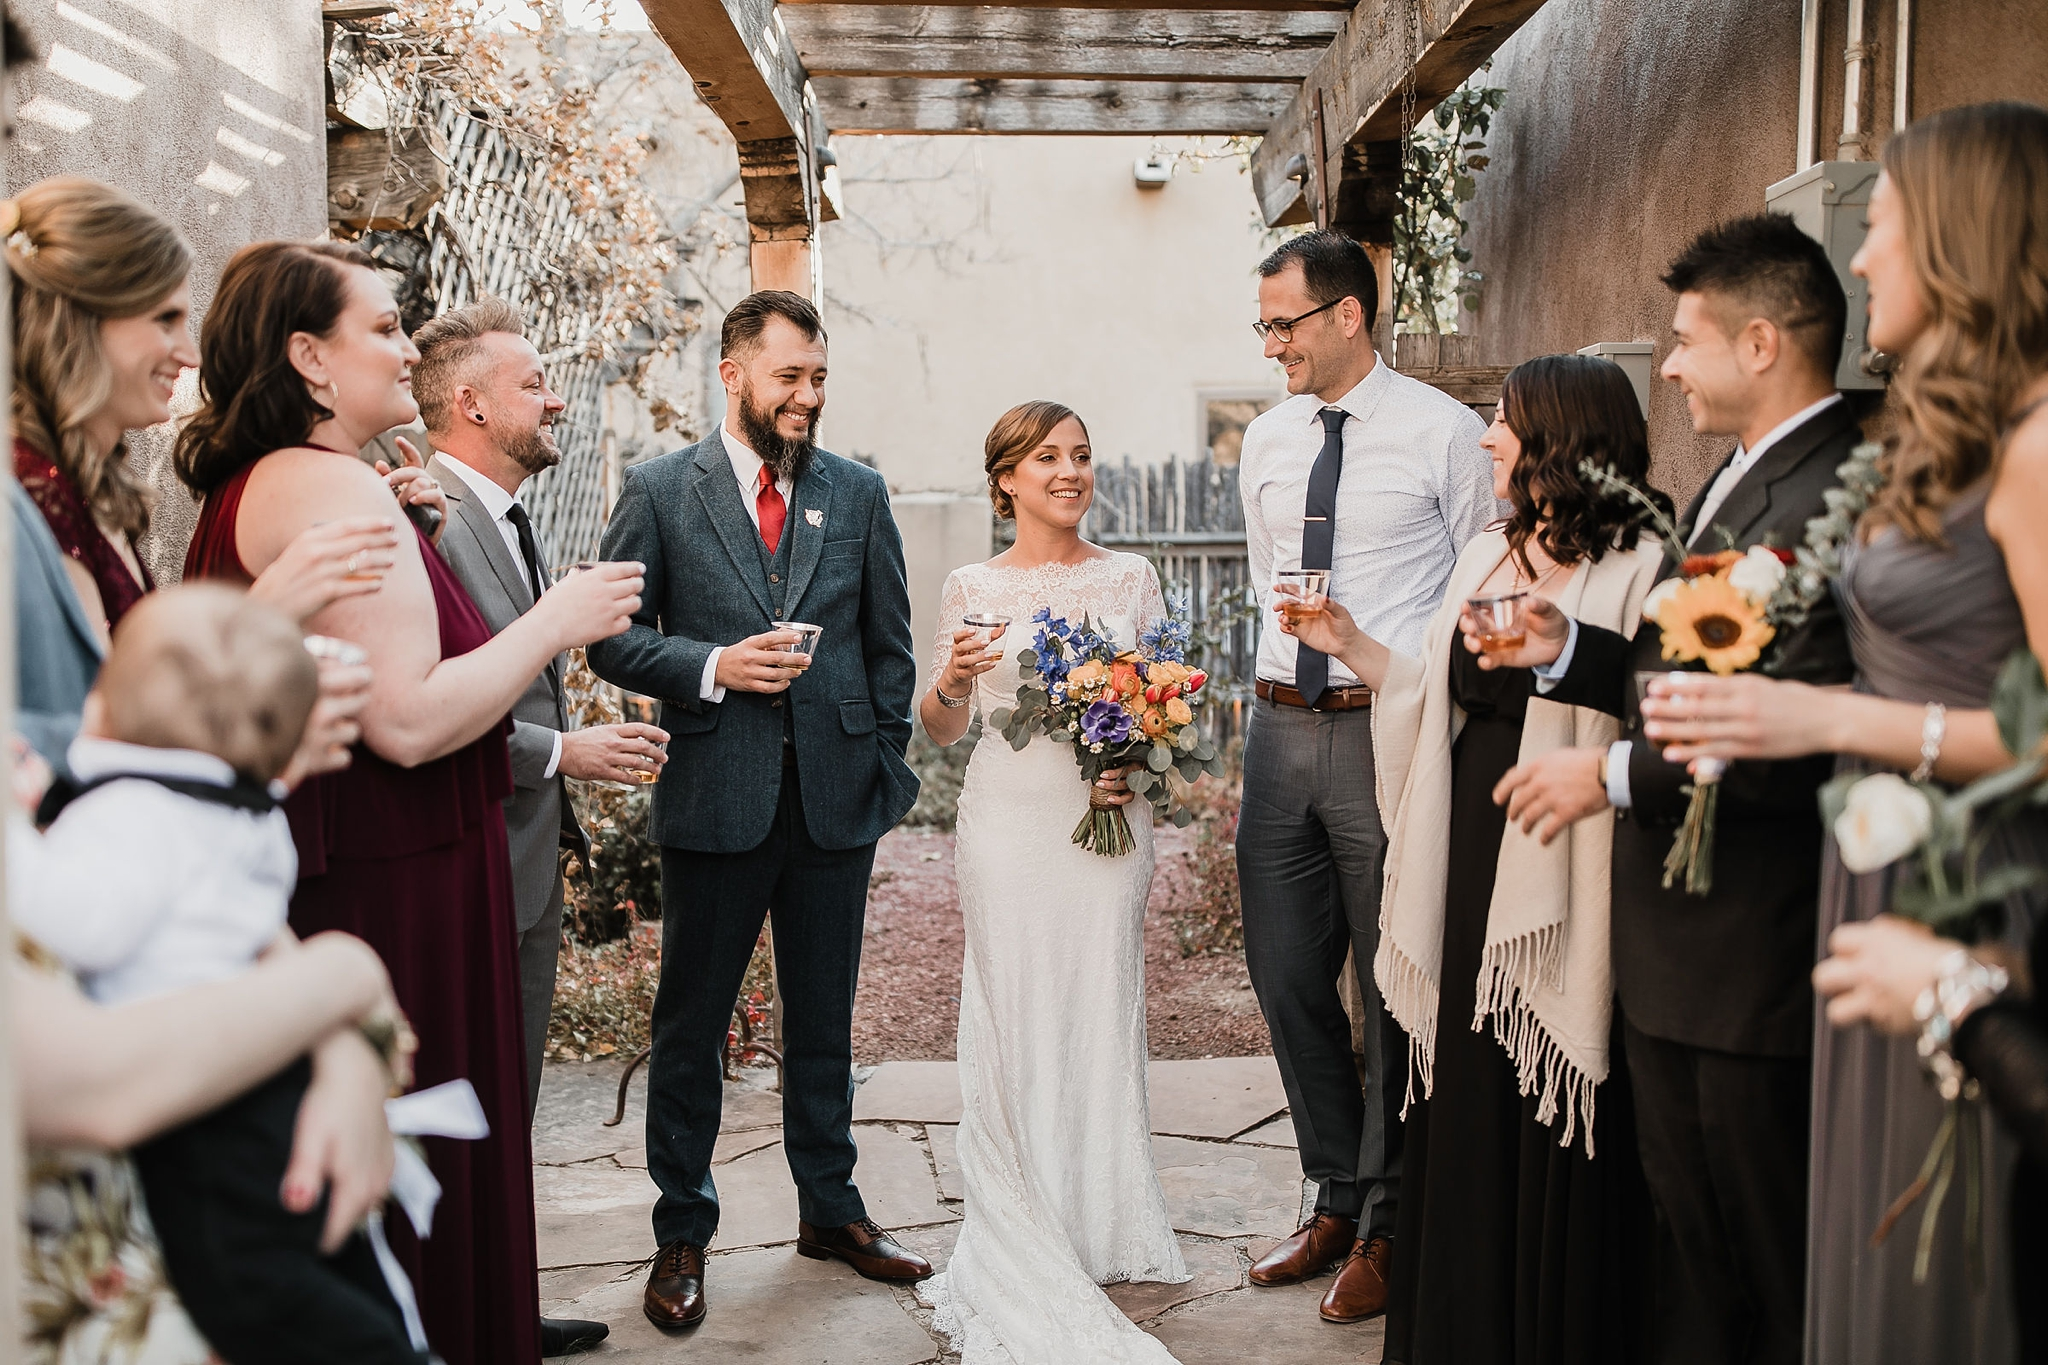 Alicia+lucia+photography+-+albuquerque+wedding+photographer+-+santa+fe+wedding+photography+-+new+mexico+wedding+photographer+-+albuquerque+wedding+-+sarabande+bed+breakfast+-+bed+and+breakfast+wedding_0035.jpg